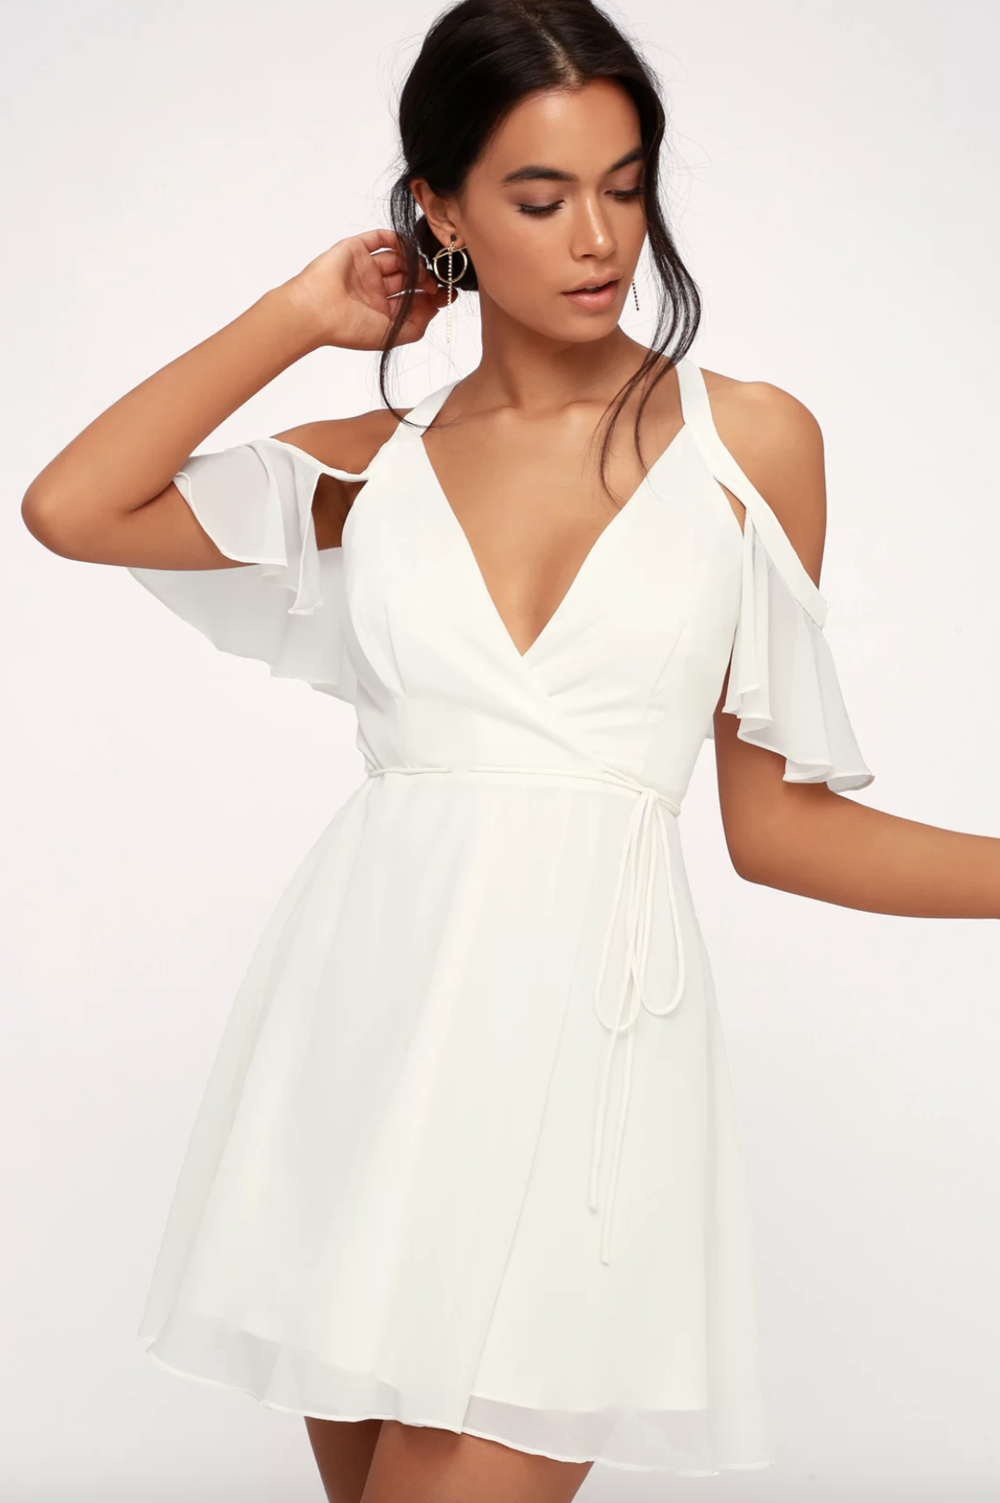 BOMBSHELL WHITE OFF-THE-SHOULDER WRAP DRESS Bachelorette party dress, white dress, cocktail dress, bridal shower dress | www.thoughtfully-thrifted.com